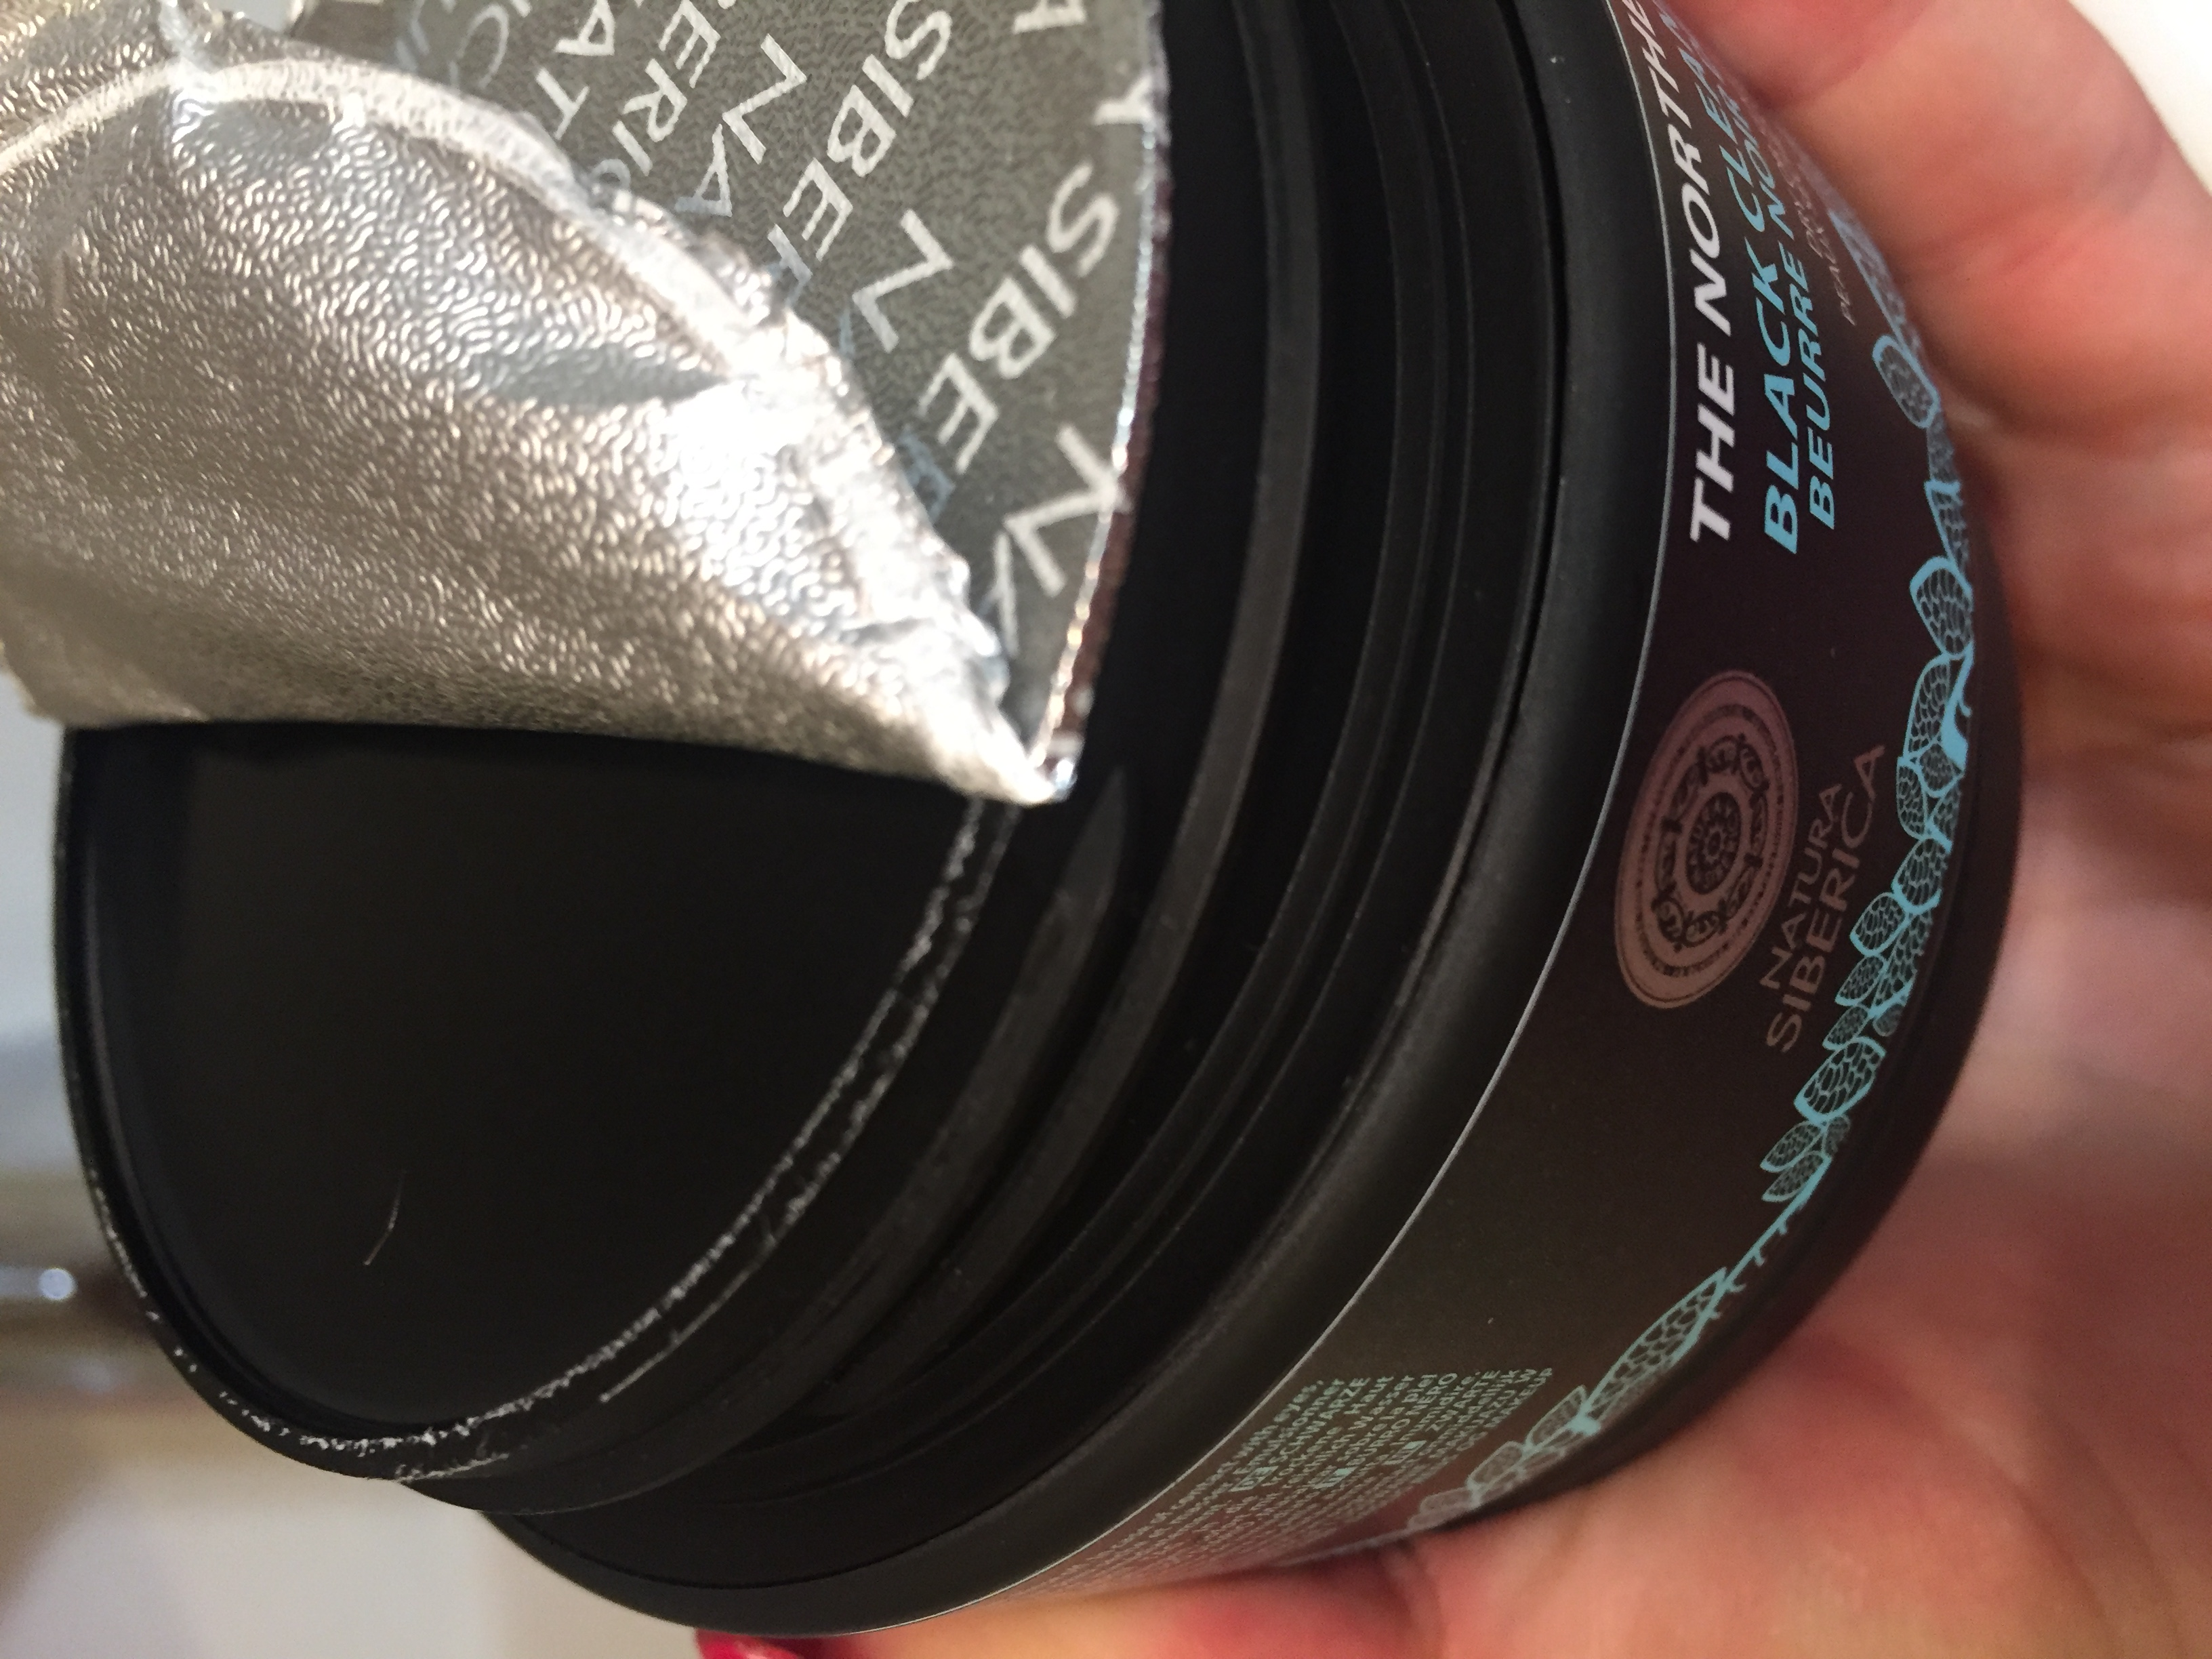 Natura Siberica - Black Cleansing Butter